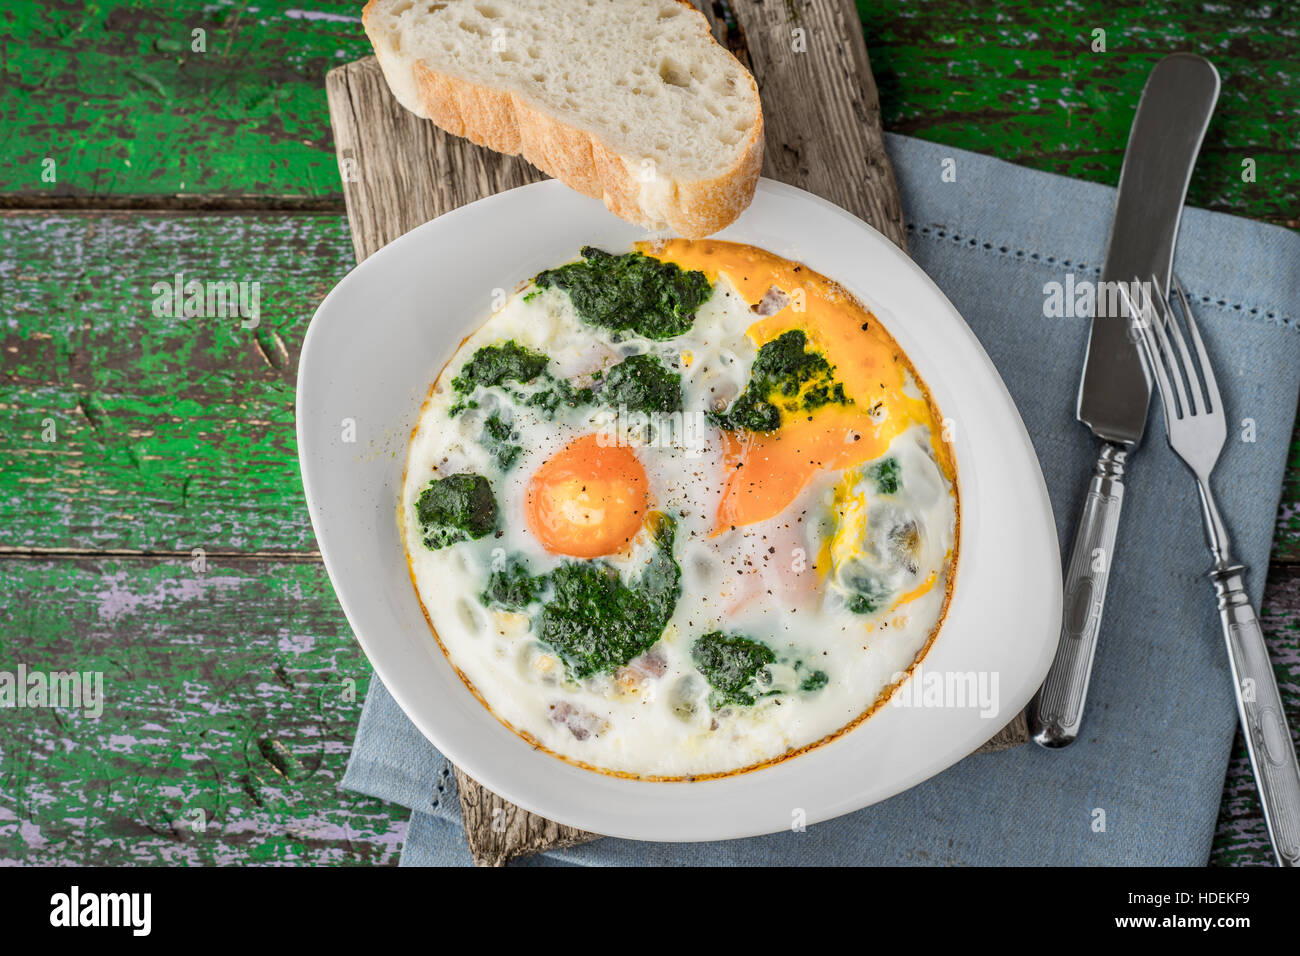 Florentine eggs with pureed spinach on the old wooden board - Stock Image